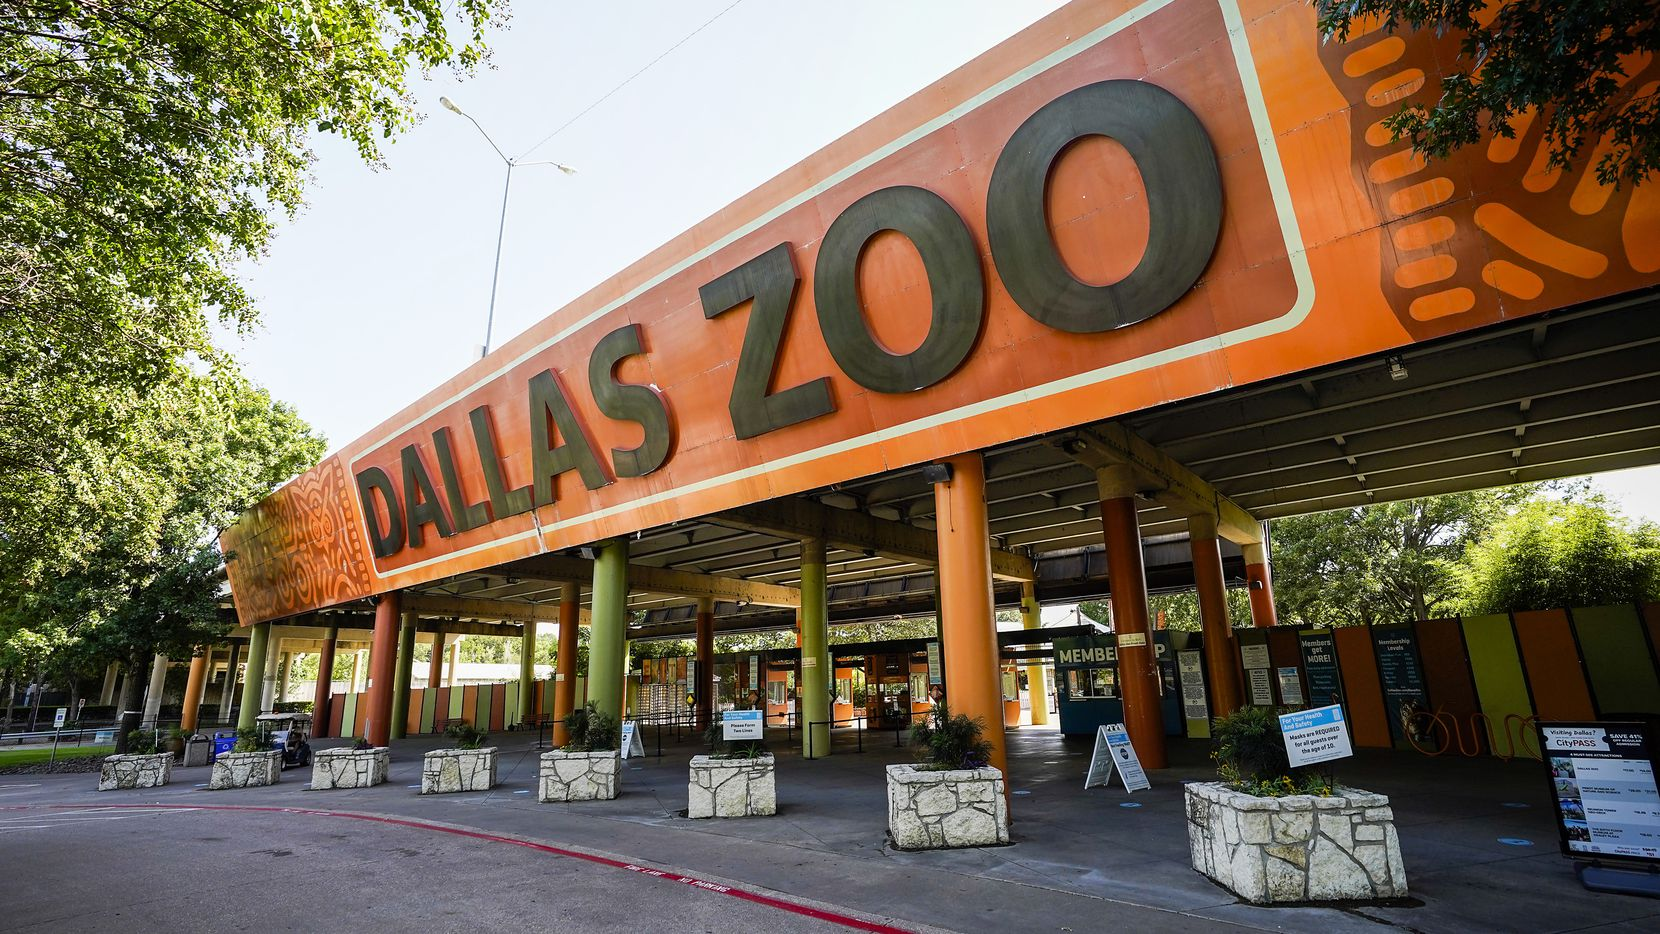 The main entrance to the Dallas Zoo seen on Thursday.